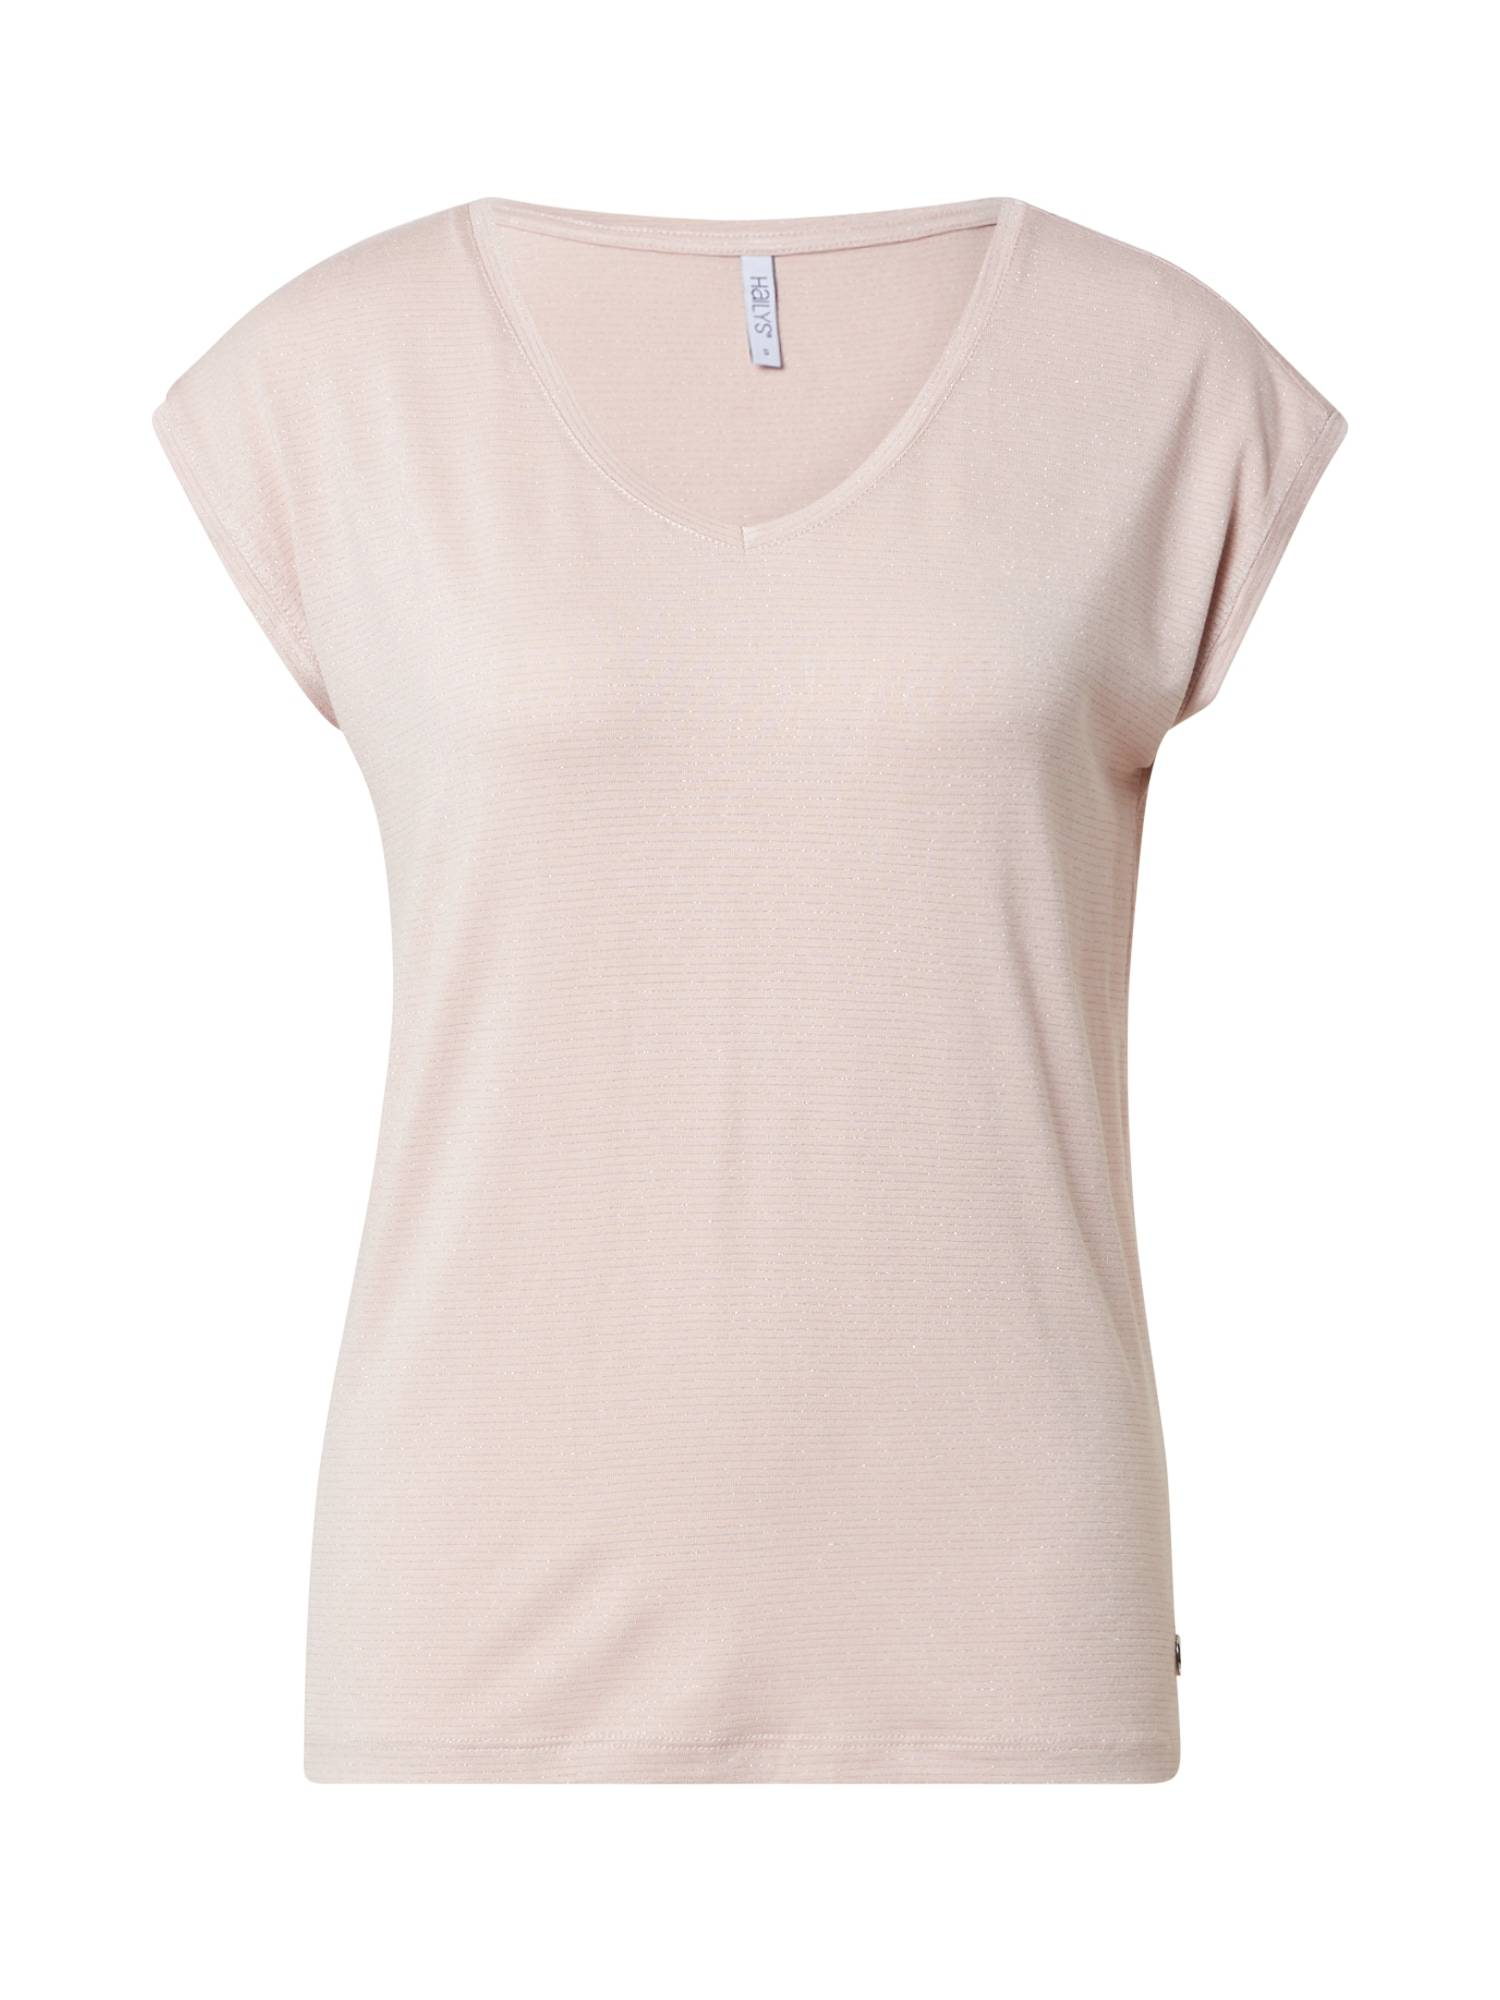 Hailys T-shirt 'TP Luxe'  - Rose - Taille: XL - female